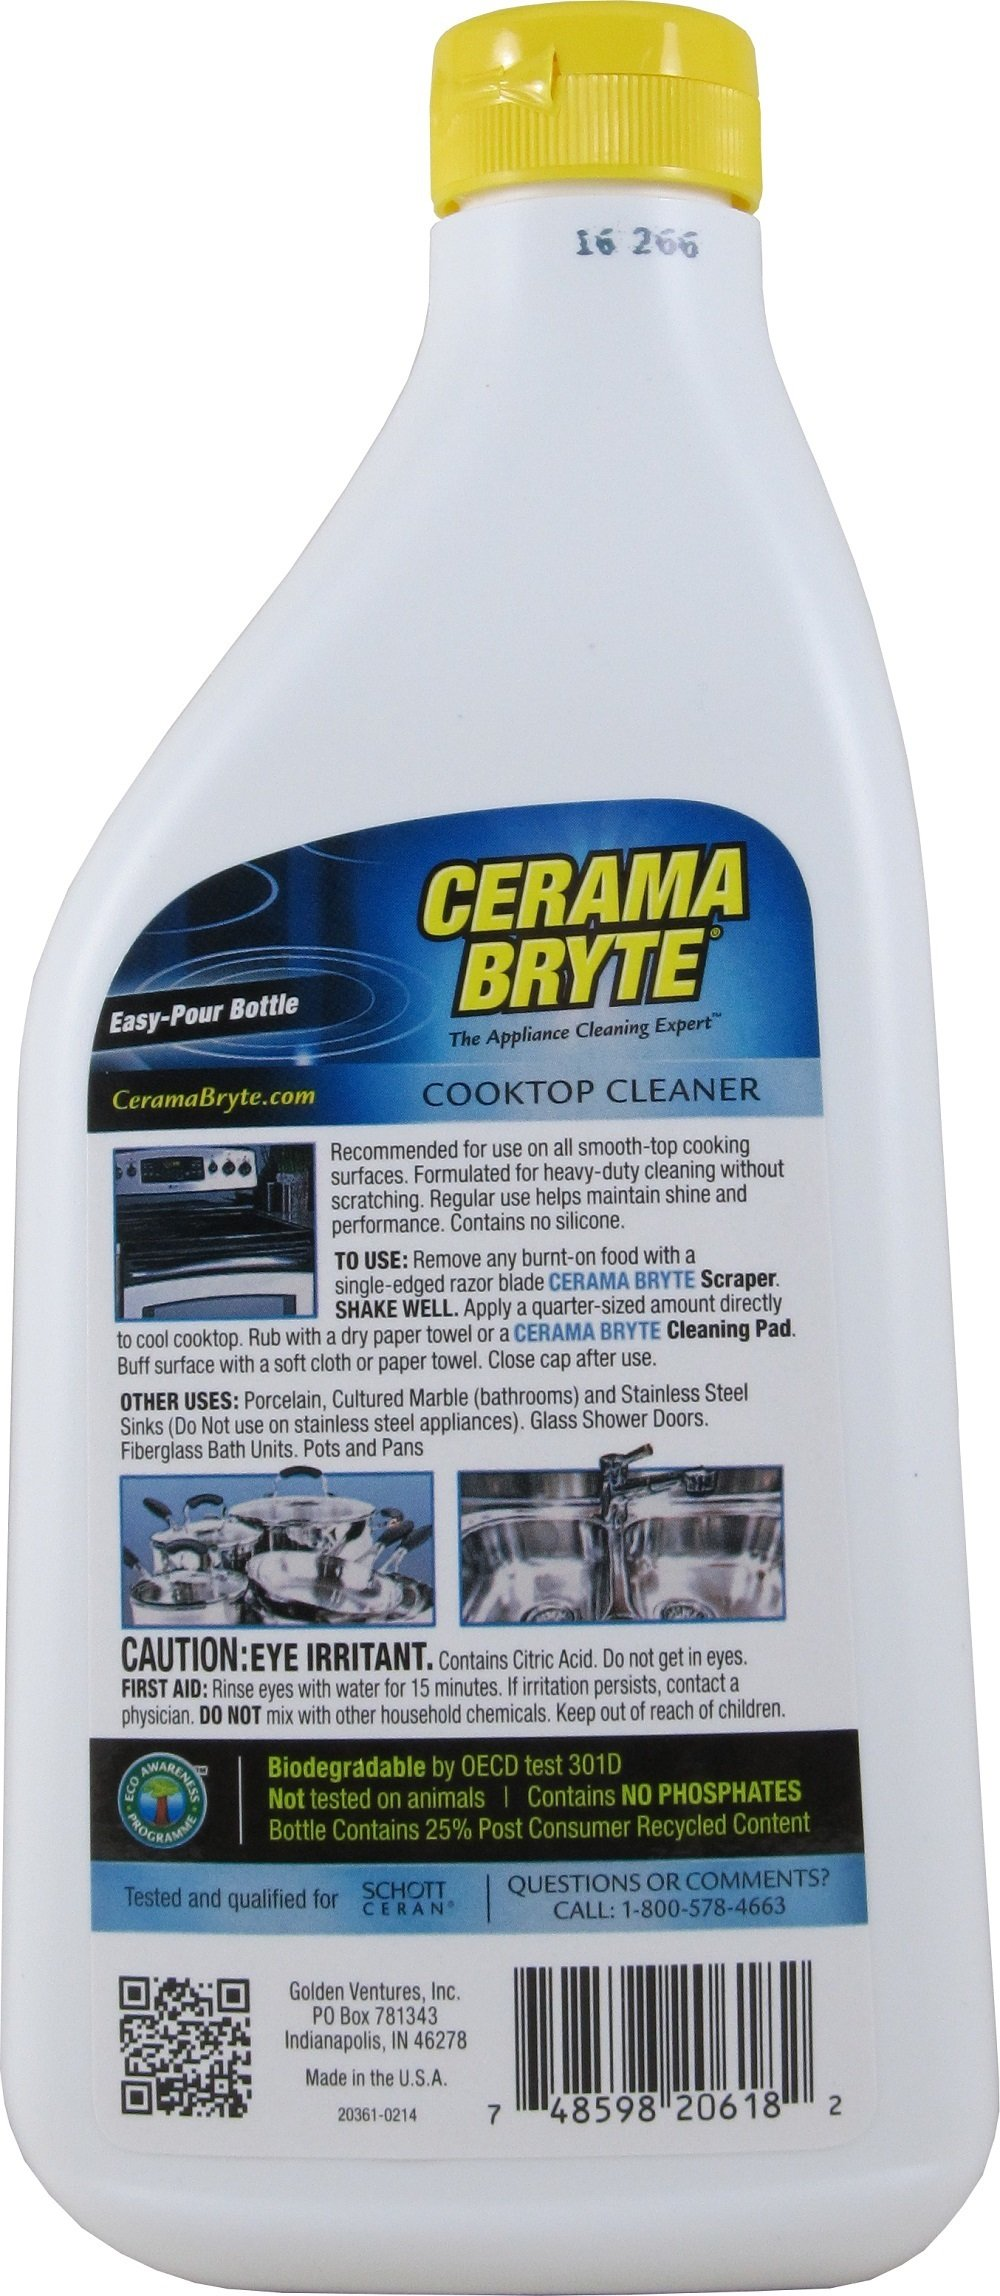 Cerama Bryte Glass-Ceramic Cooktop Cleaner, 28 Ounce, 6 Count by Cerama Bryte